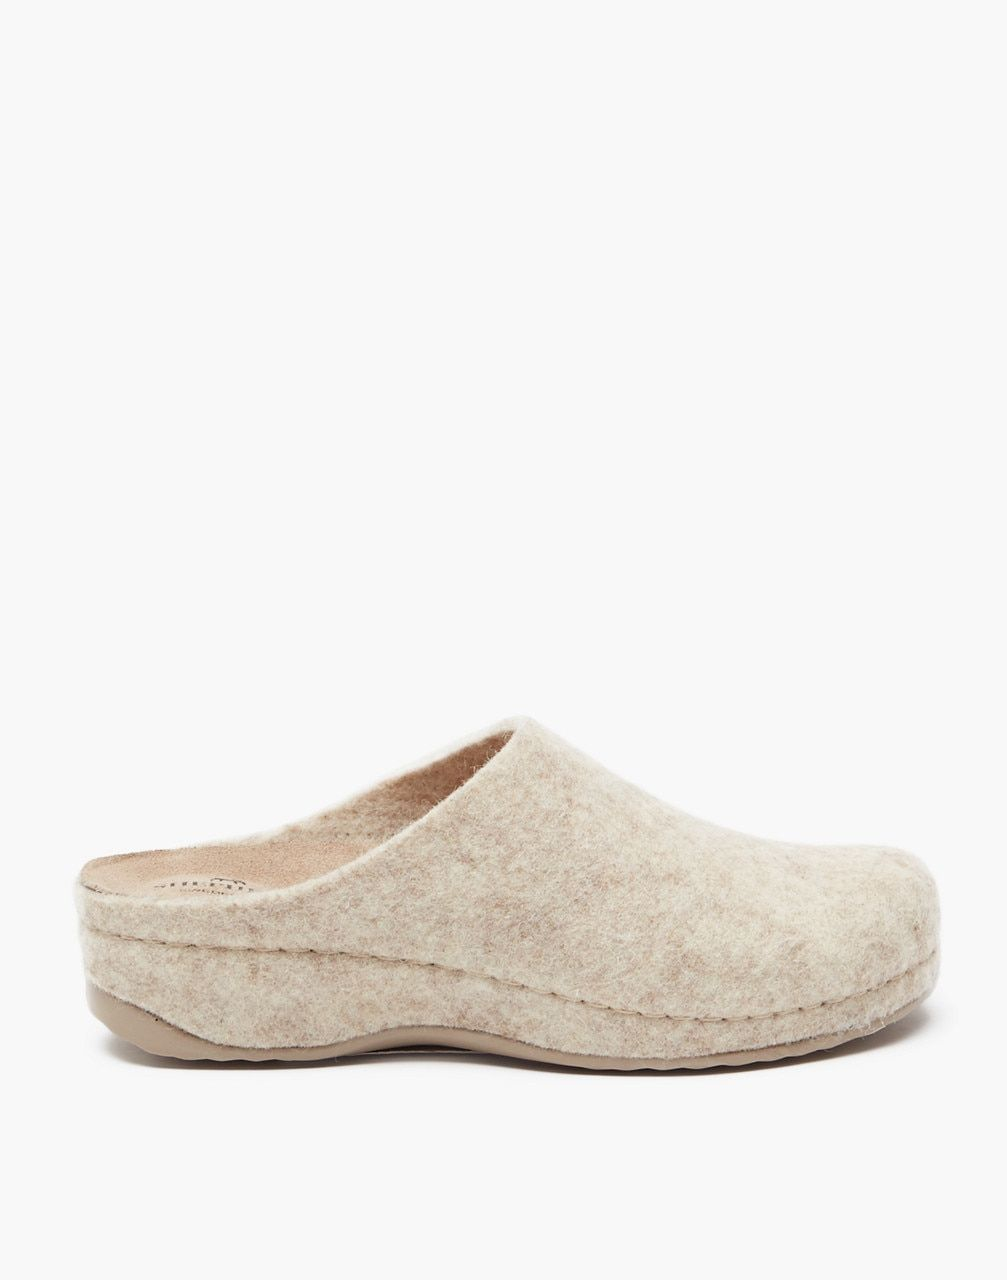 Shepherd Of Sweden Felted Wool Gitte Slippers In 2020 Wool Shoes Clogs Style Slippers